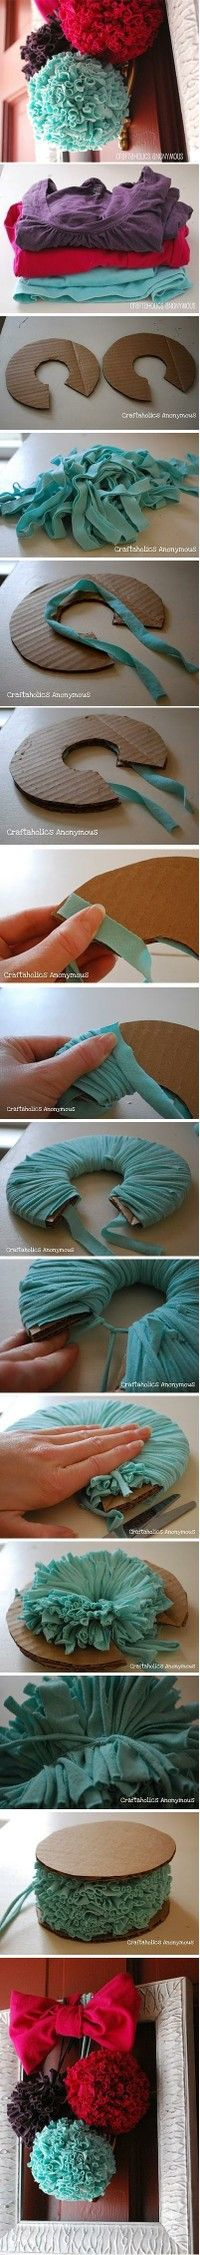 "DIY- cloths ball!   This is to cute, fun and easy to make! You could also used old ""hankies"" instead of one fabric!!"